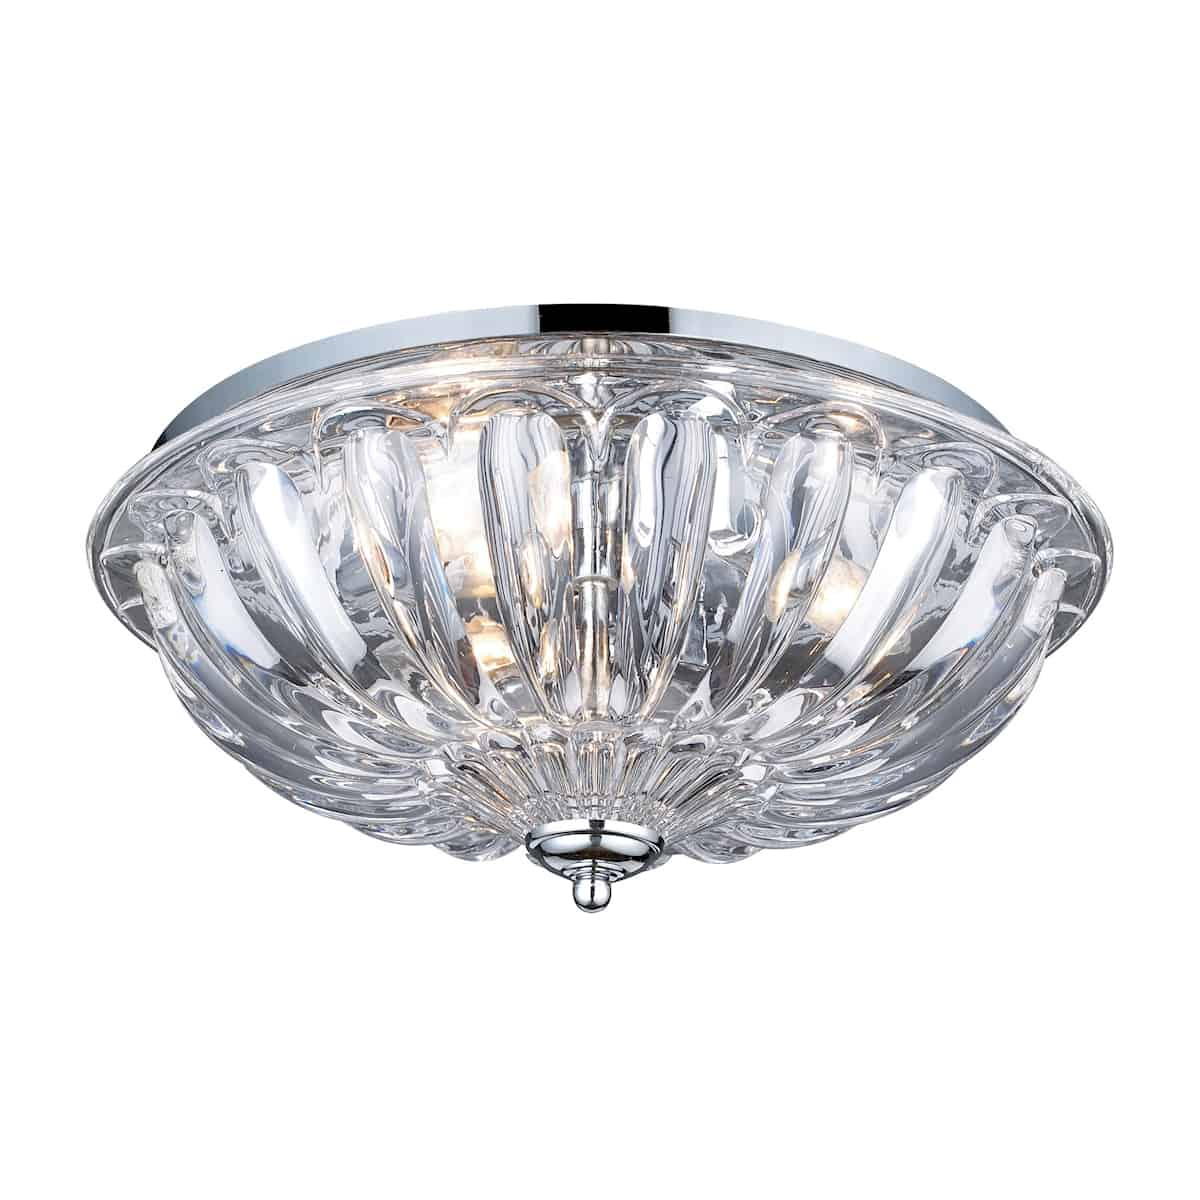 EL-31242/3_These attractive designs are made of high quality crystal in a variety of patterns